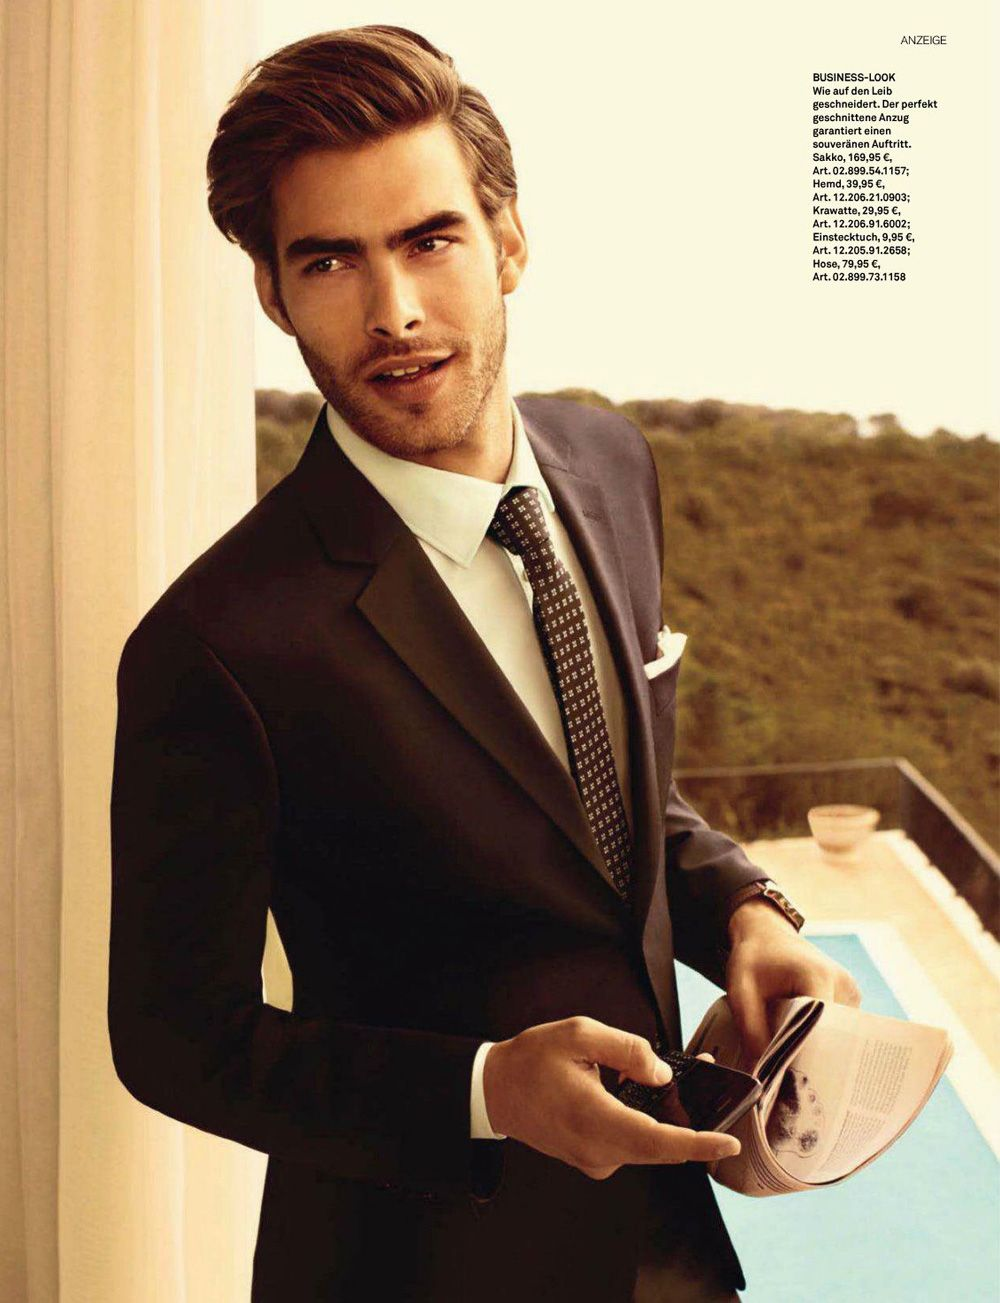 Pin by trevor timson on mens fashion pinterest windsor knot gq